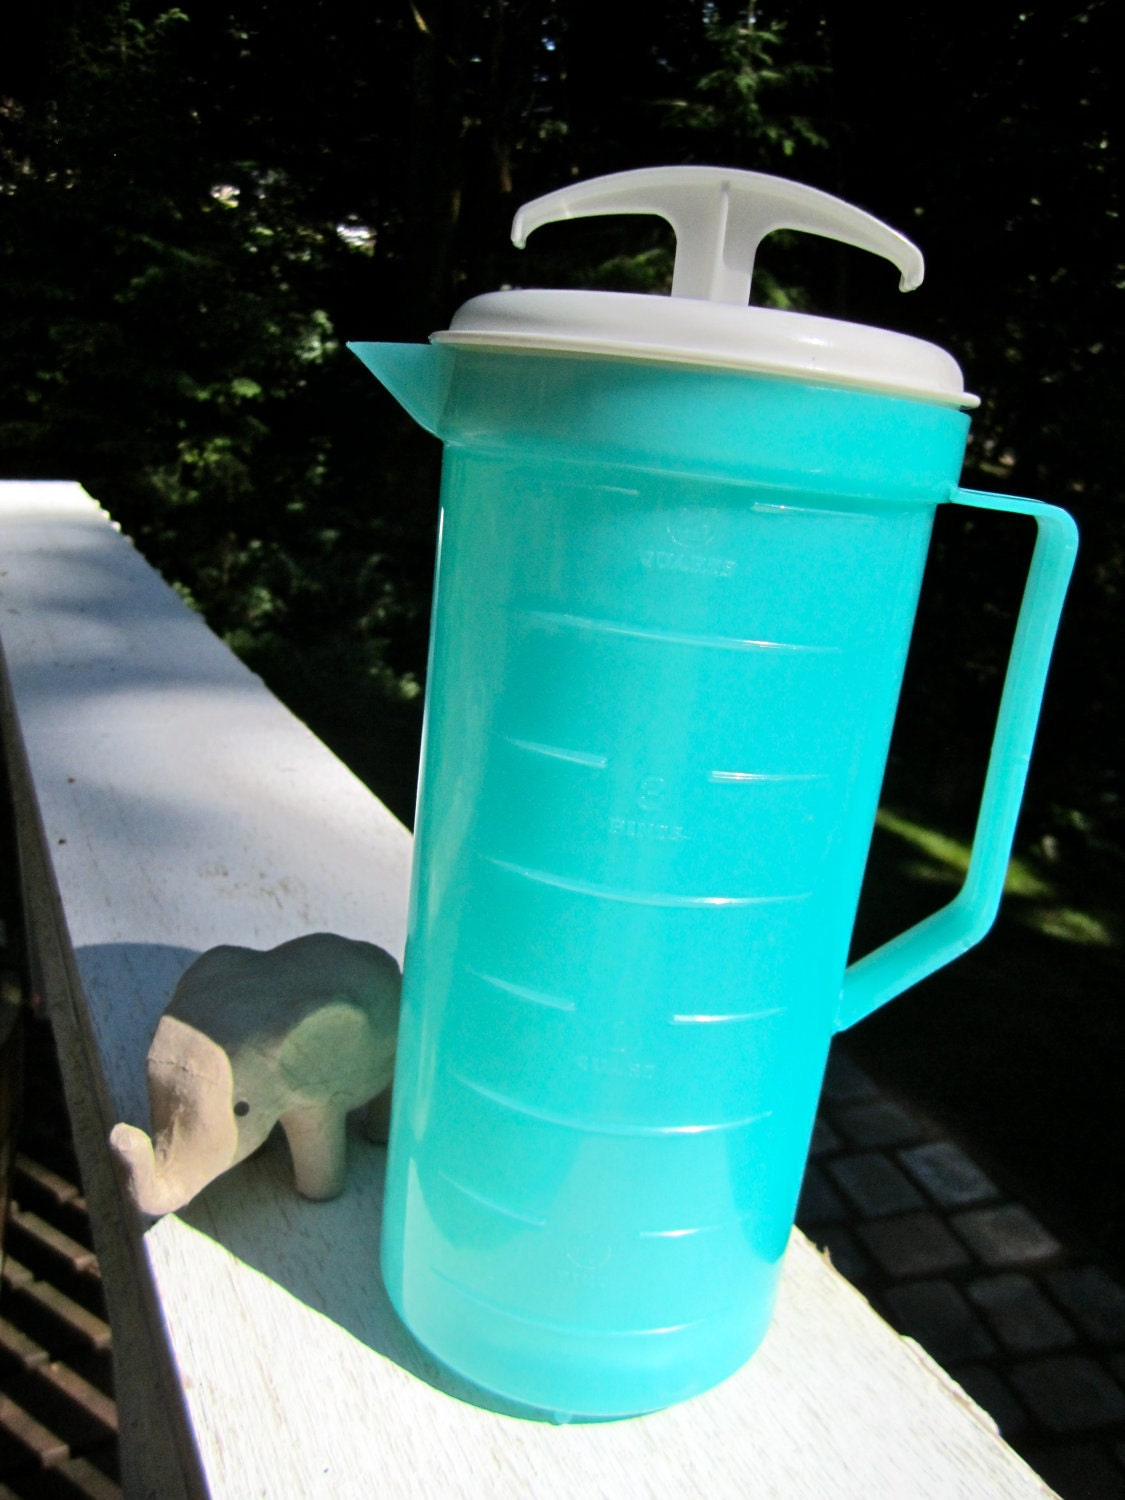 Turquoise Plastic 2 Qt Pitcher Plunger With Tight By